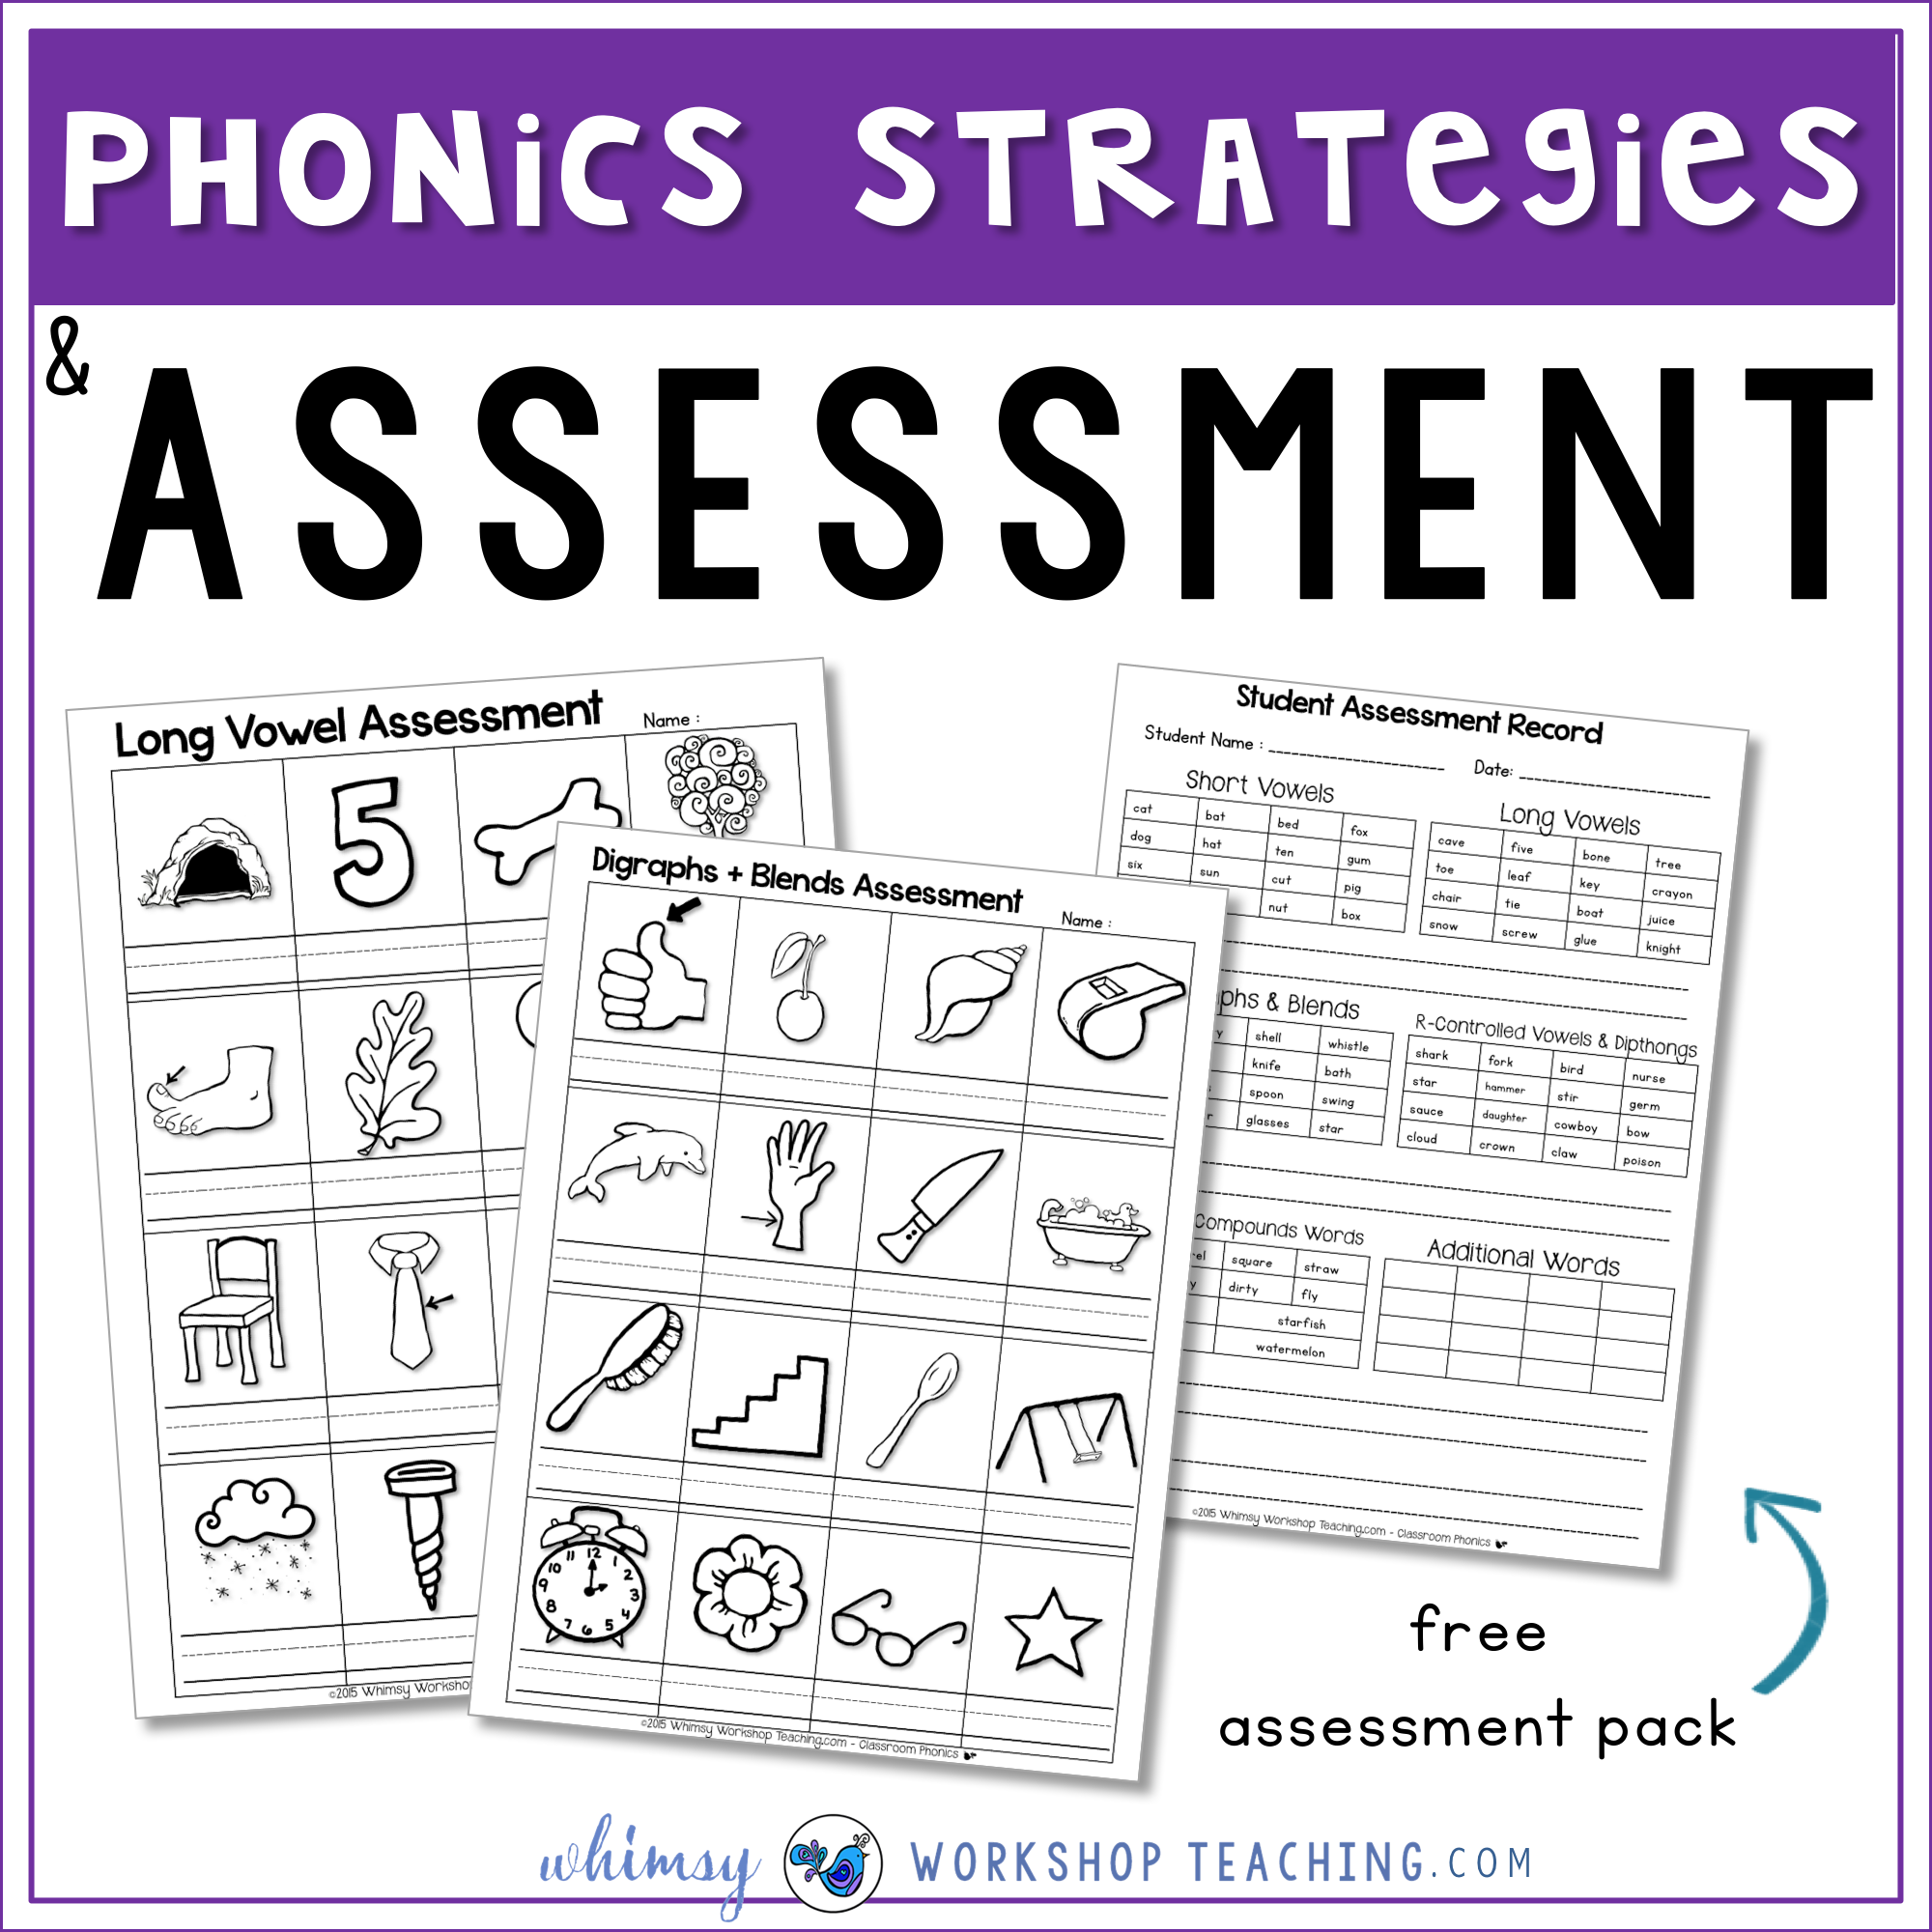 phonics strategies and assessment ideas